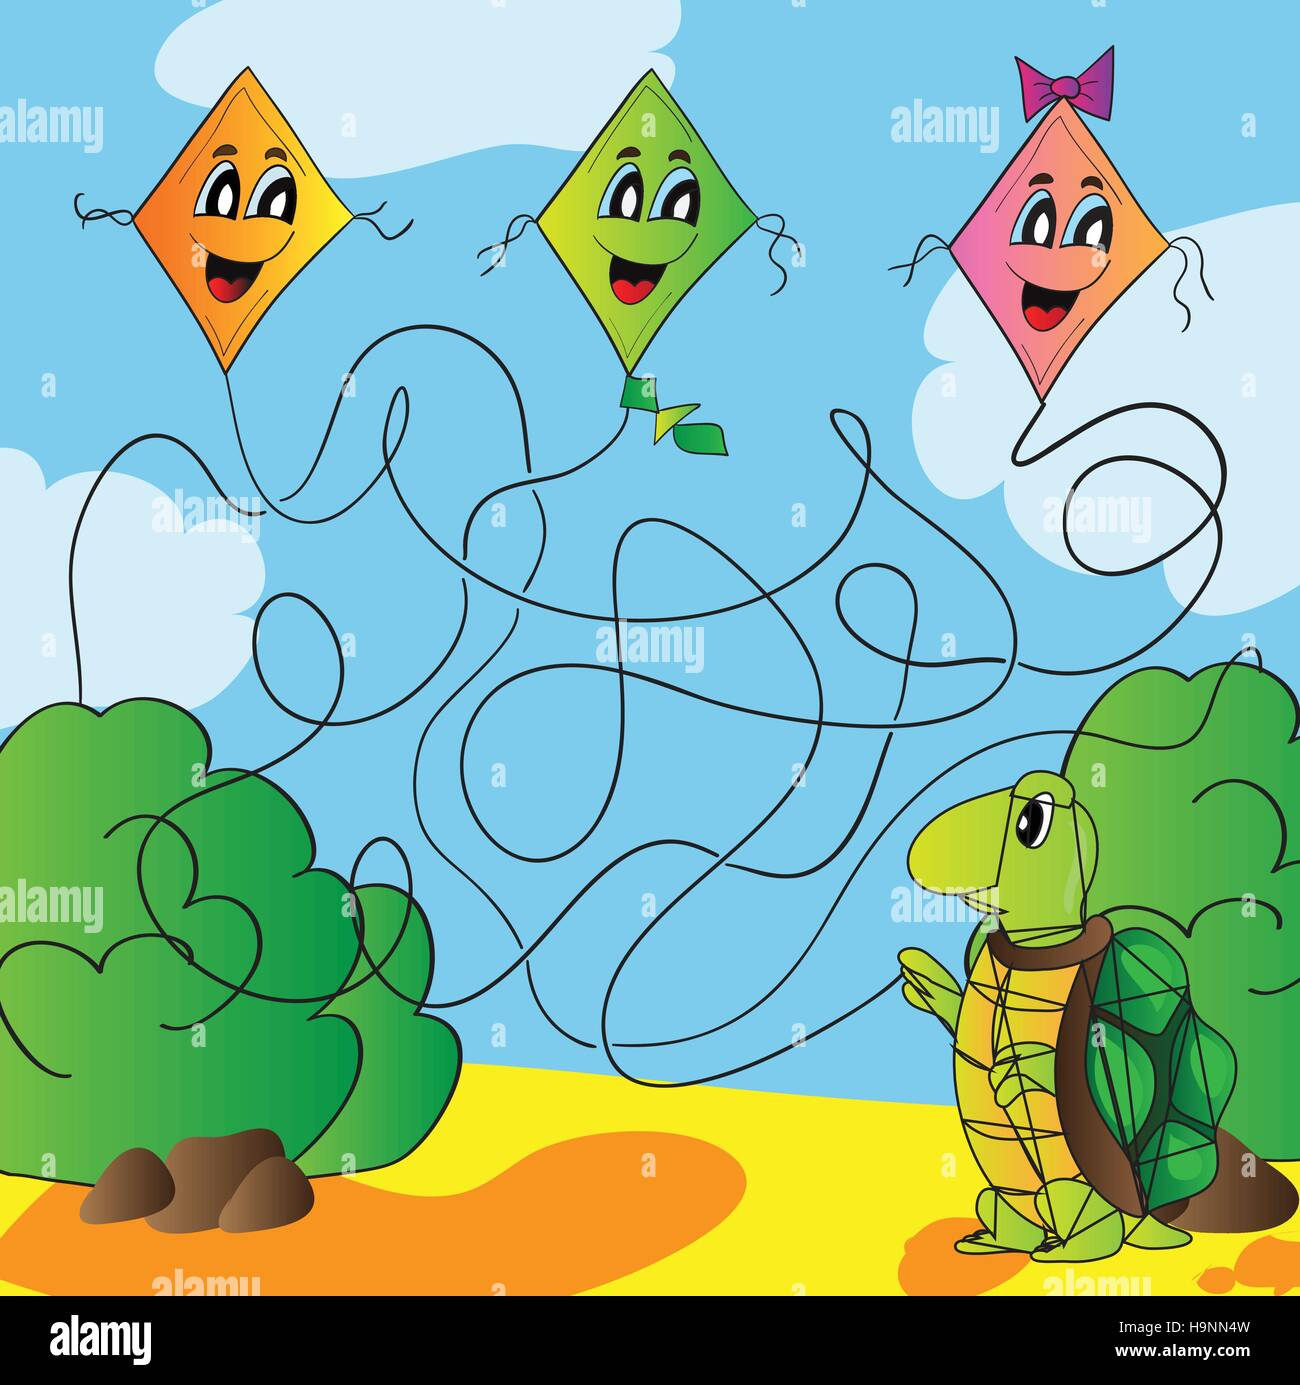 Maze turtle with a kite vector illustration - Stock Image